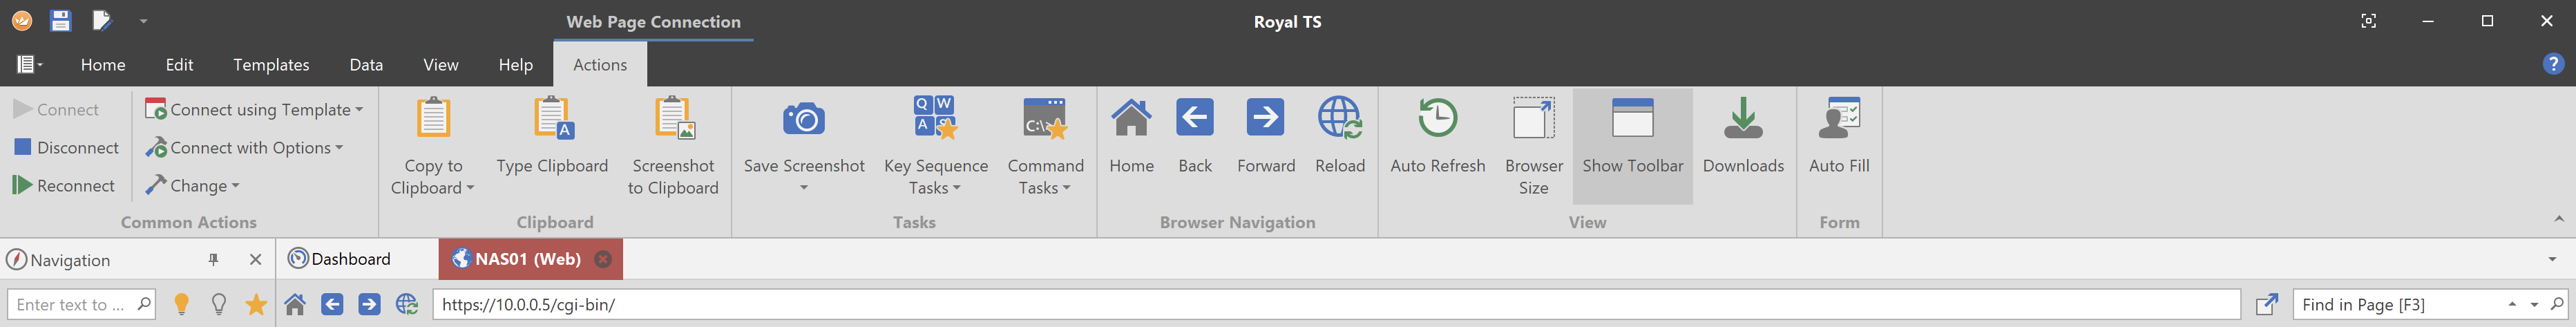 CTRL-F to find within Web Sites in Royal TS : Royal Apps